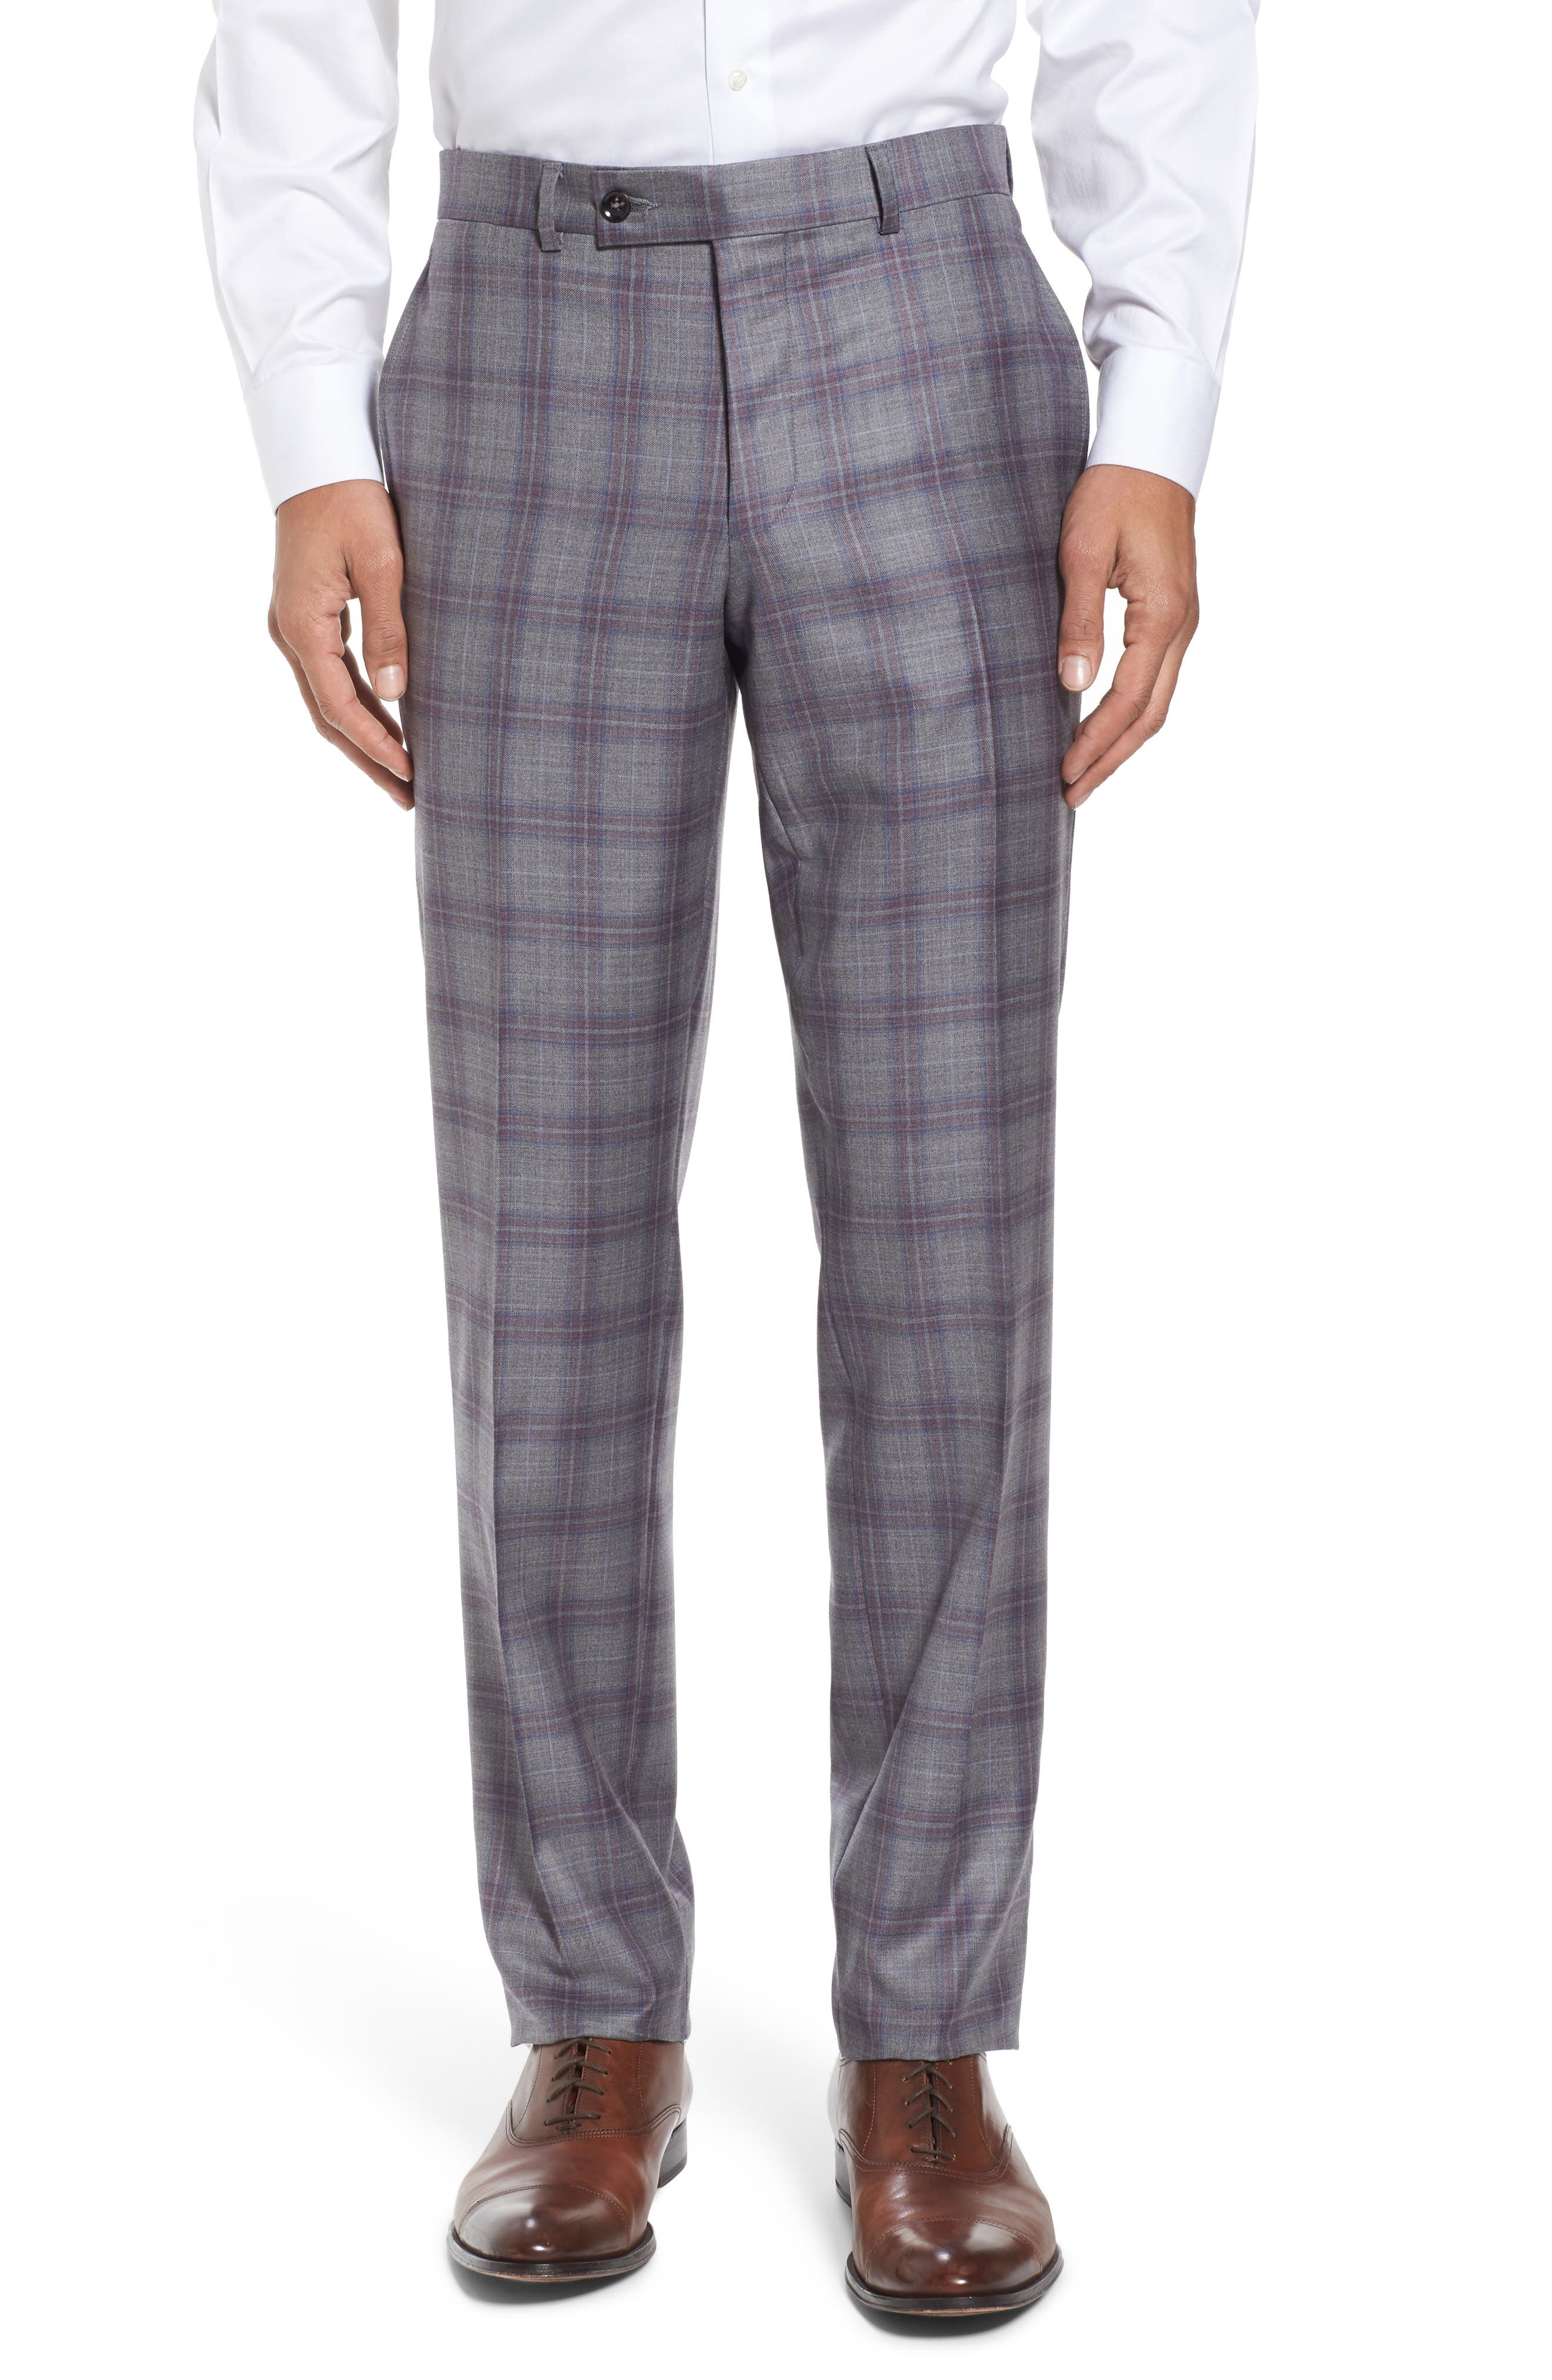 Jay Trim Fit Plaid Wool Suit,                             Alternate thumbnail 6, color,                             020